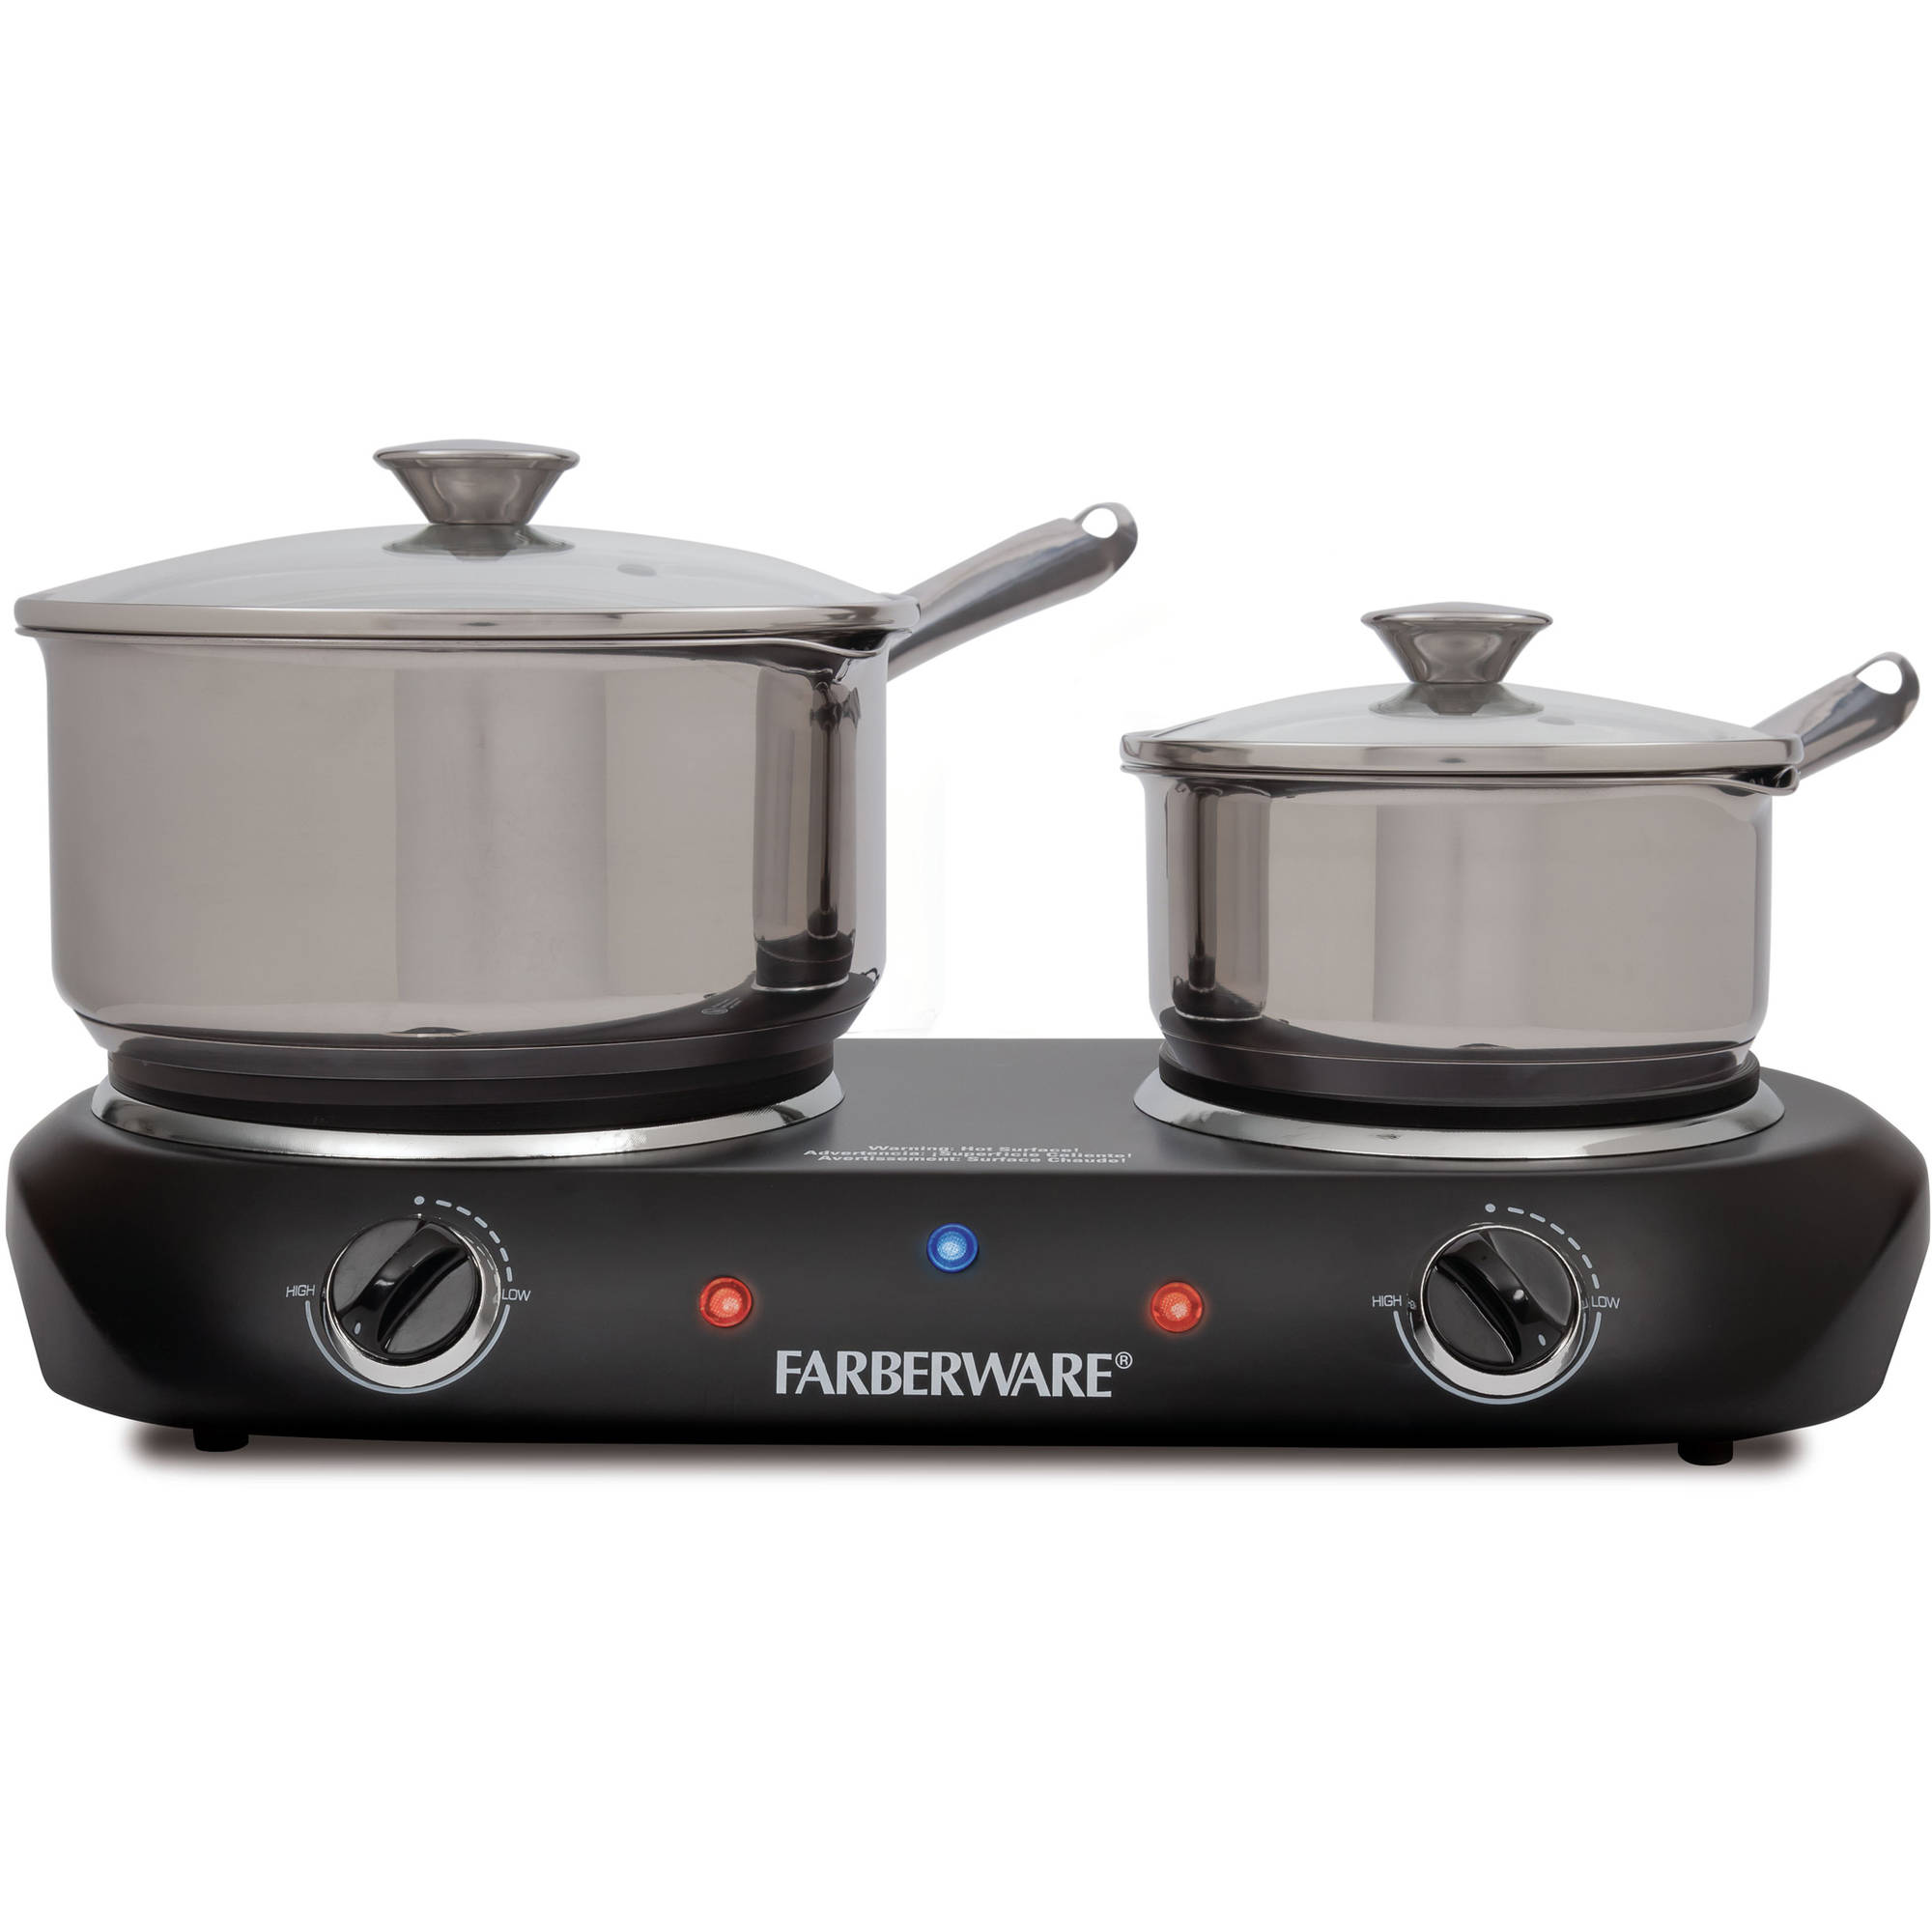 Farberware Royalty 1500 W Double Burner Black Electric Cooktop, 1 Each